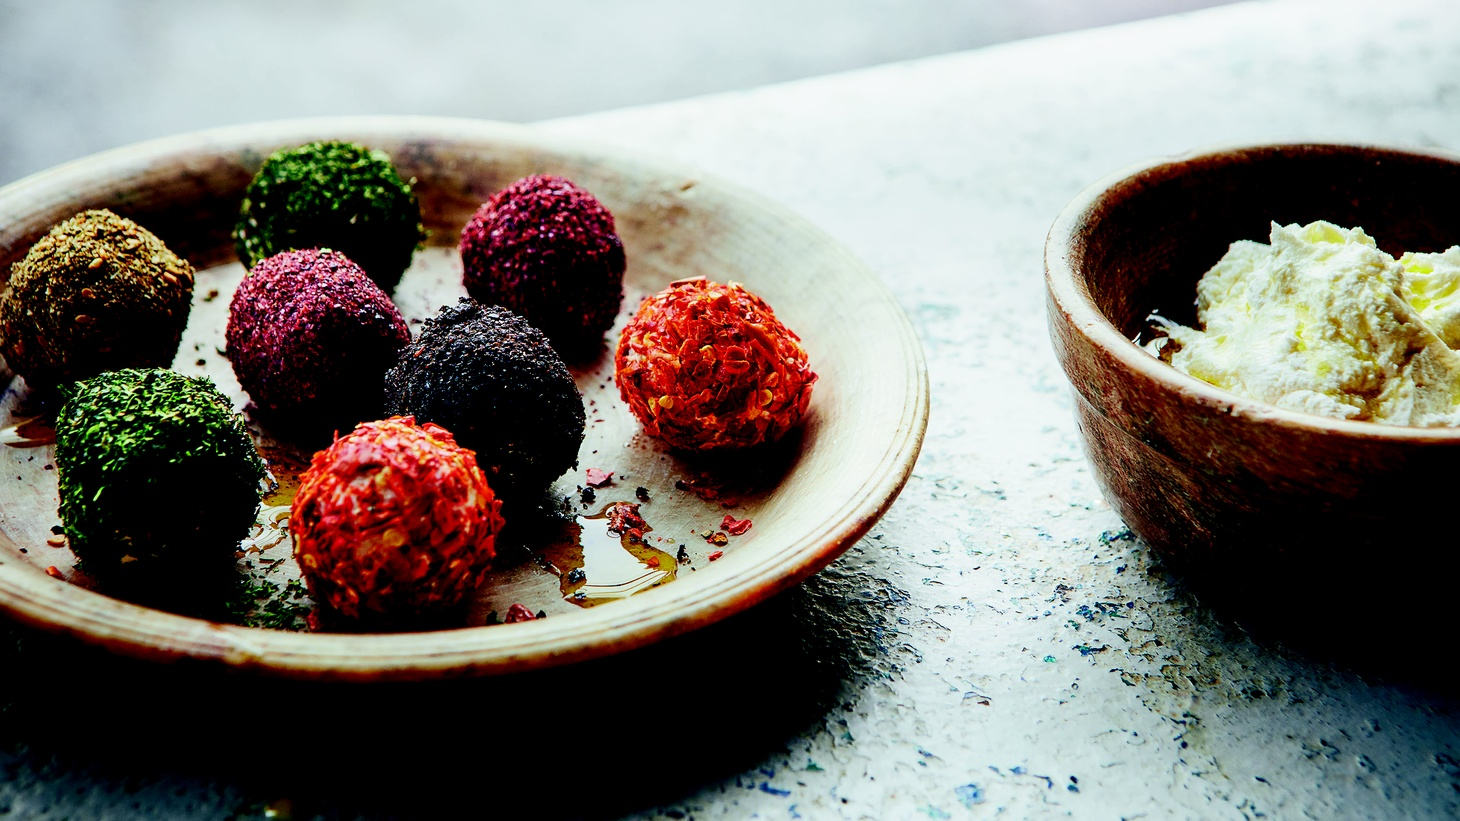 Chef Sami Tamimi recommends labneh balls to break the fast during Ramadan.